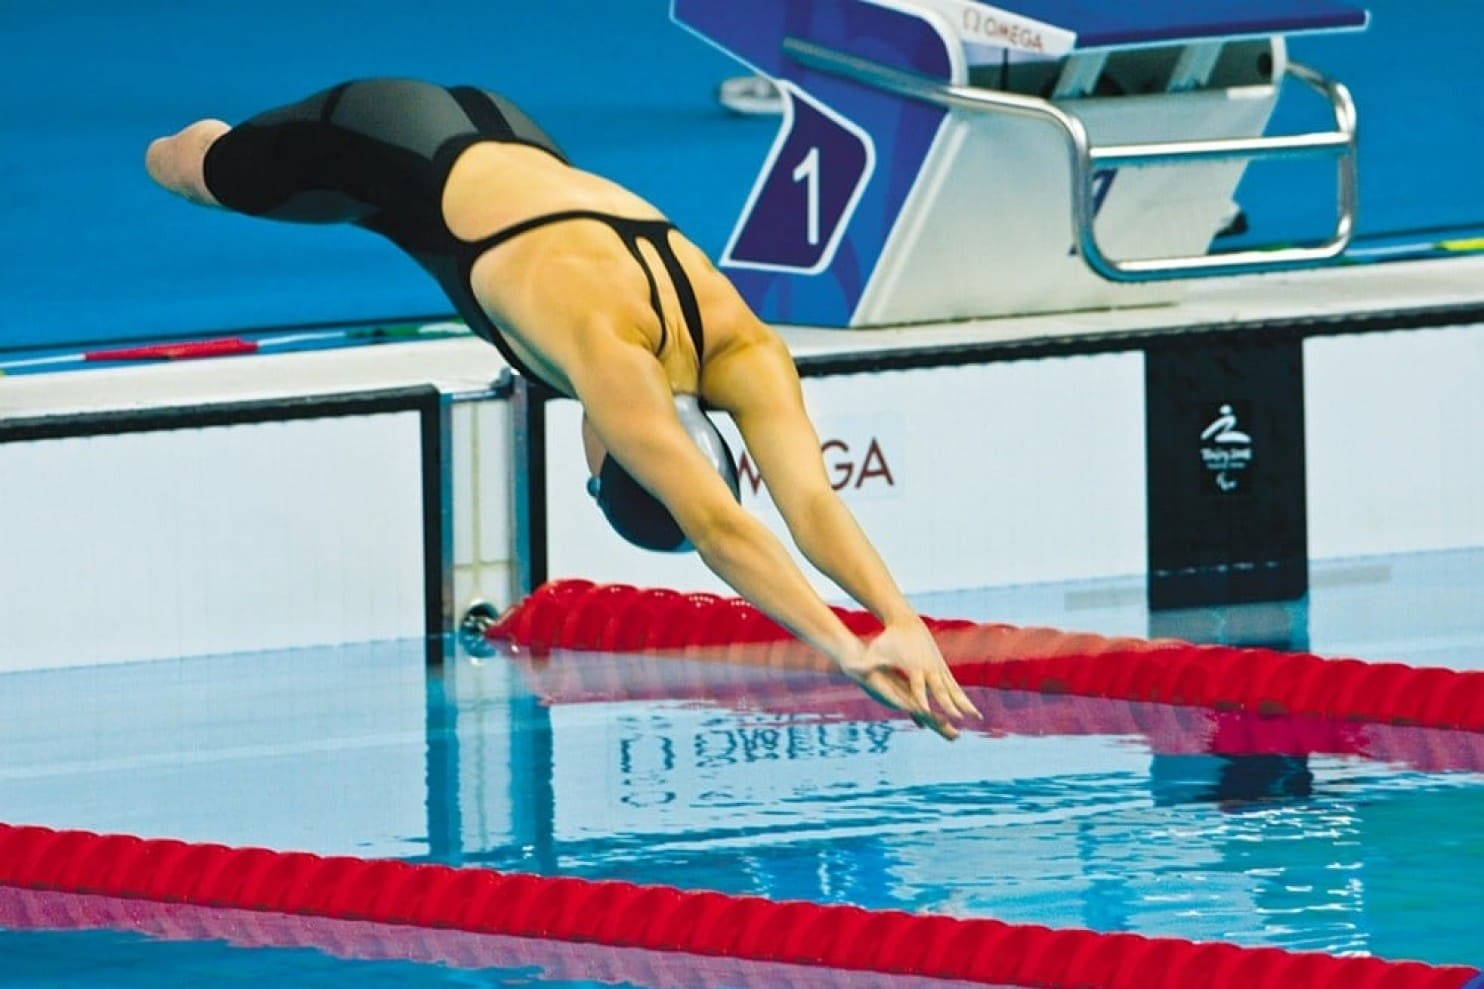 Super Bowl: image of swimmer Jessica Long diving into a pool